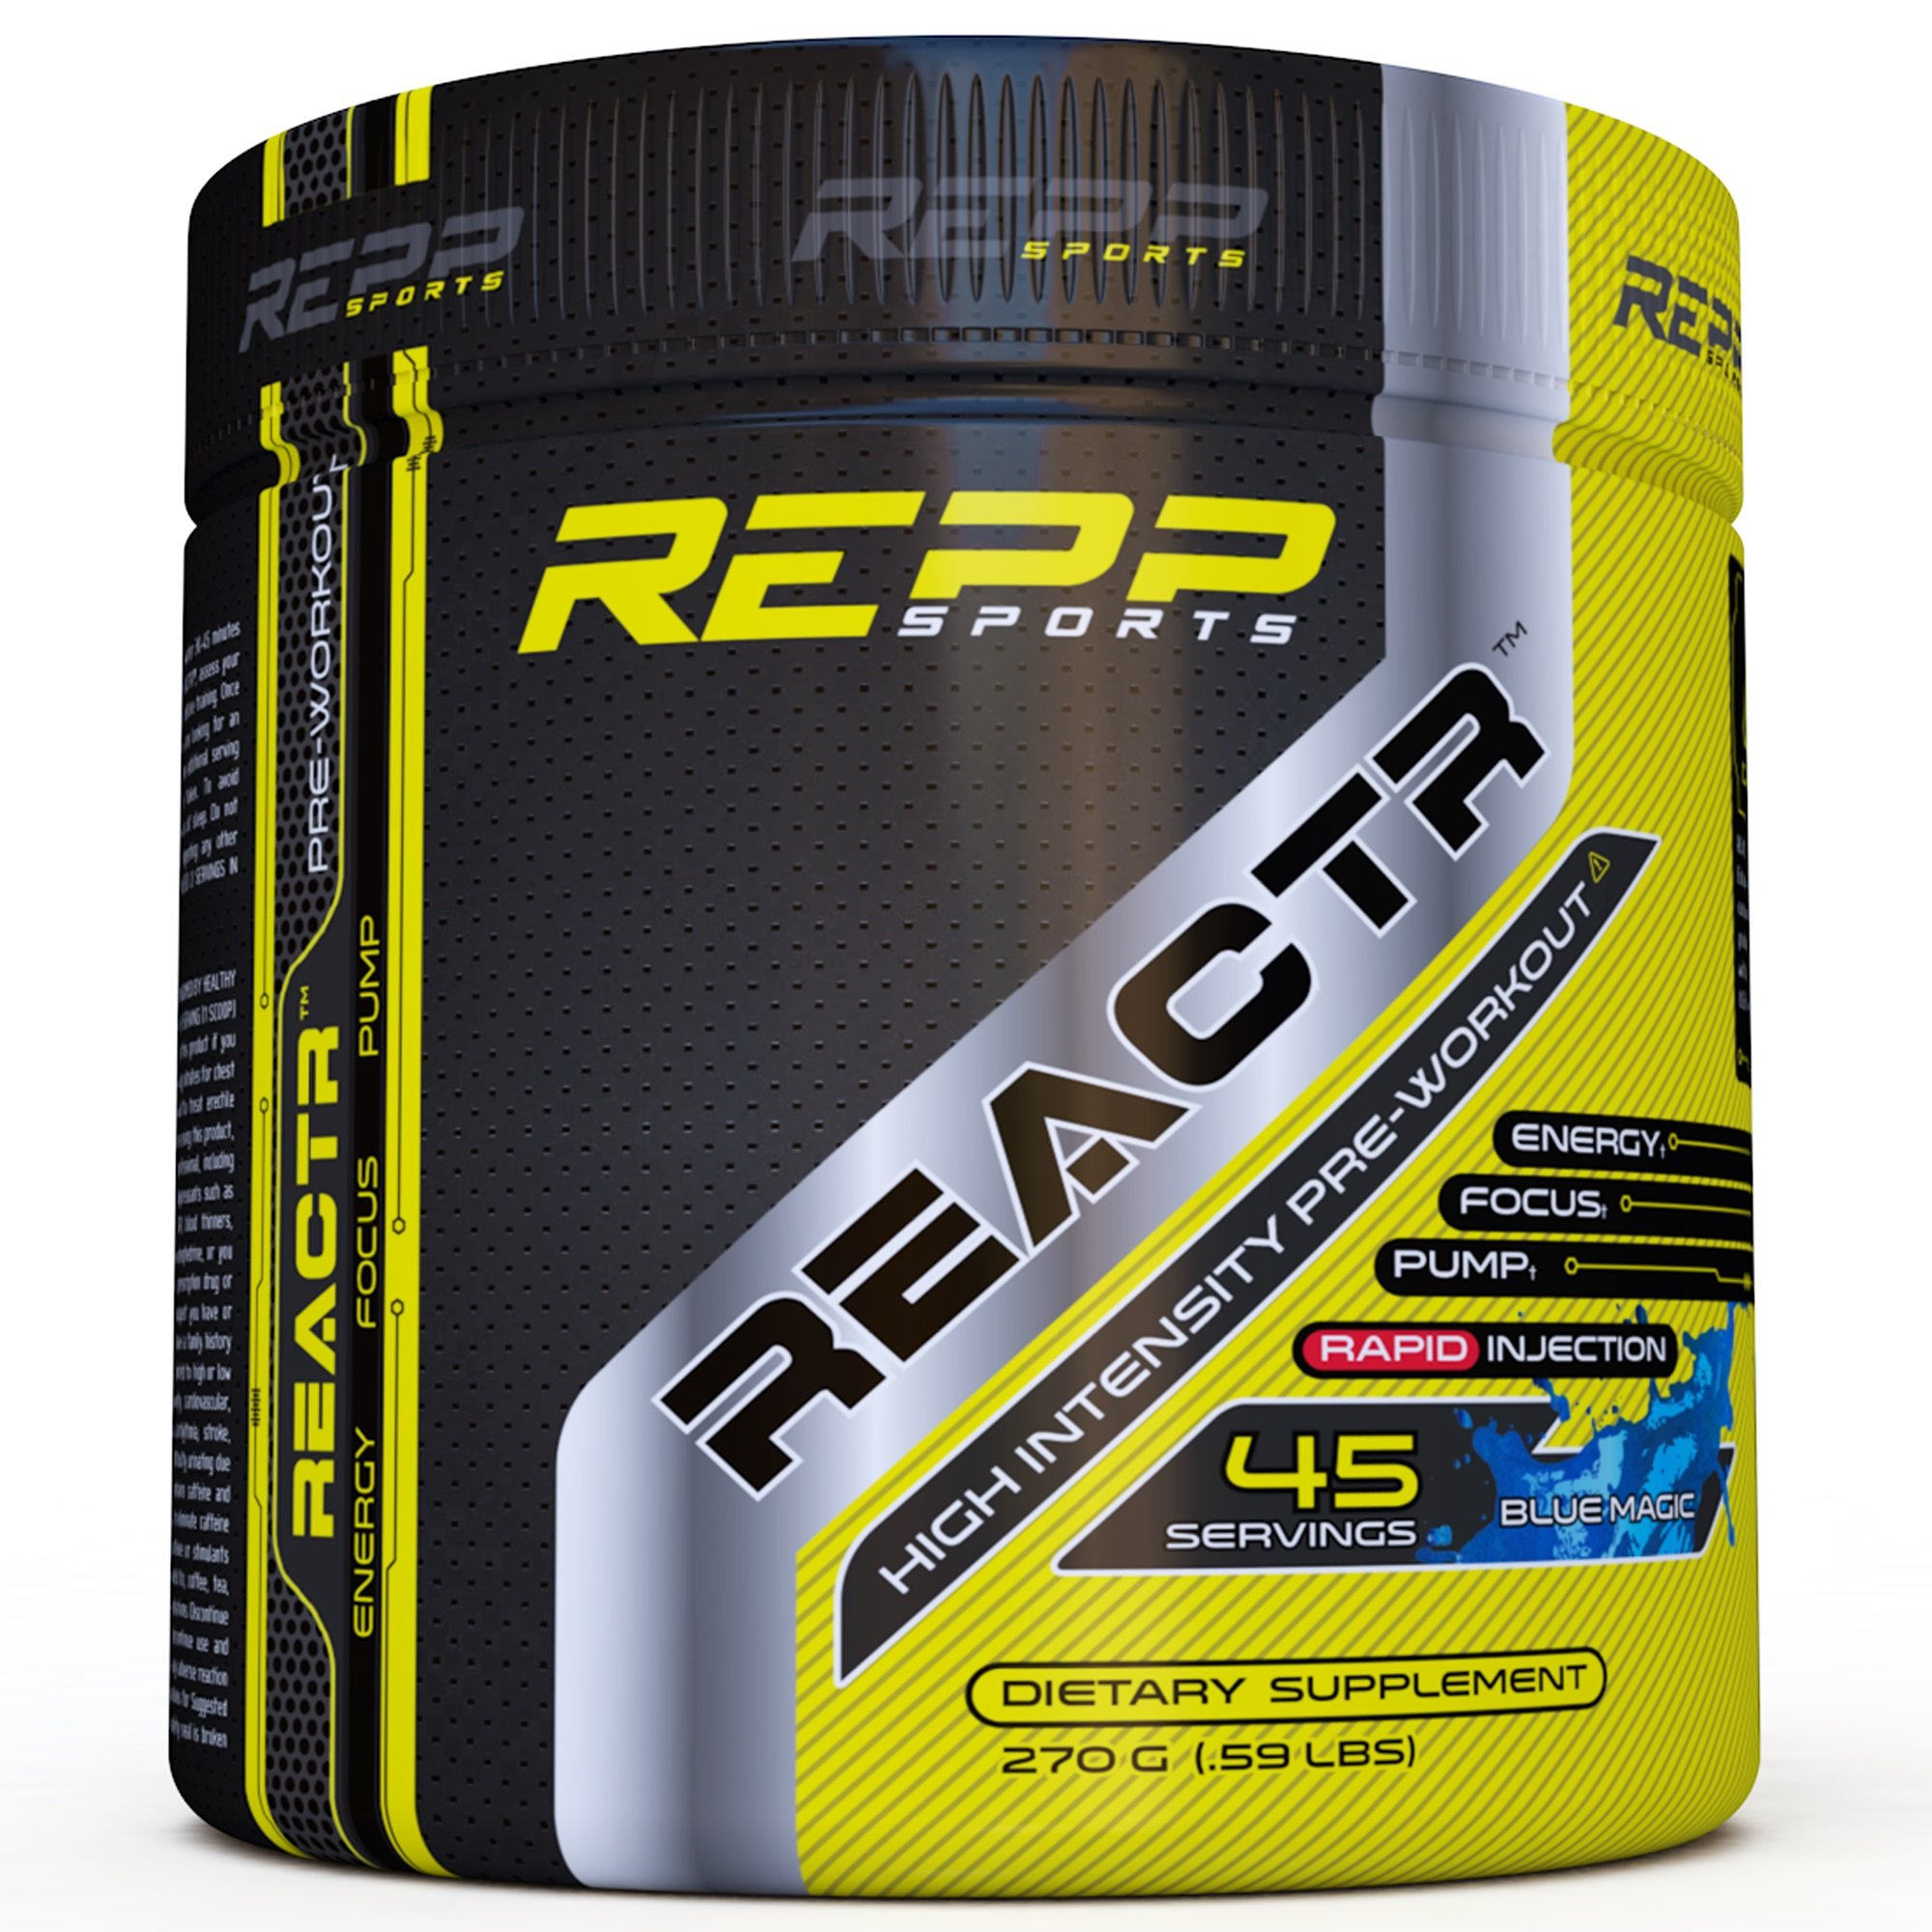 Amazon.com: Repp Sports Reactr Explosive Pre-Workout Powder, (Blue Magic) 45 Servings: Health & Personal Care